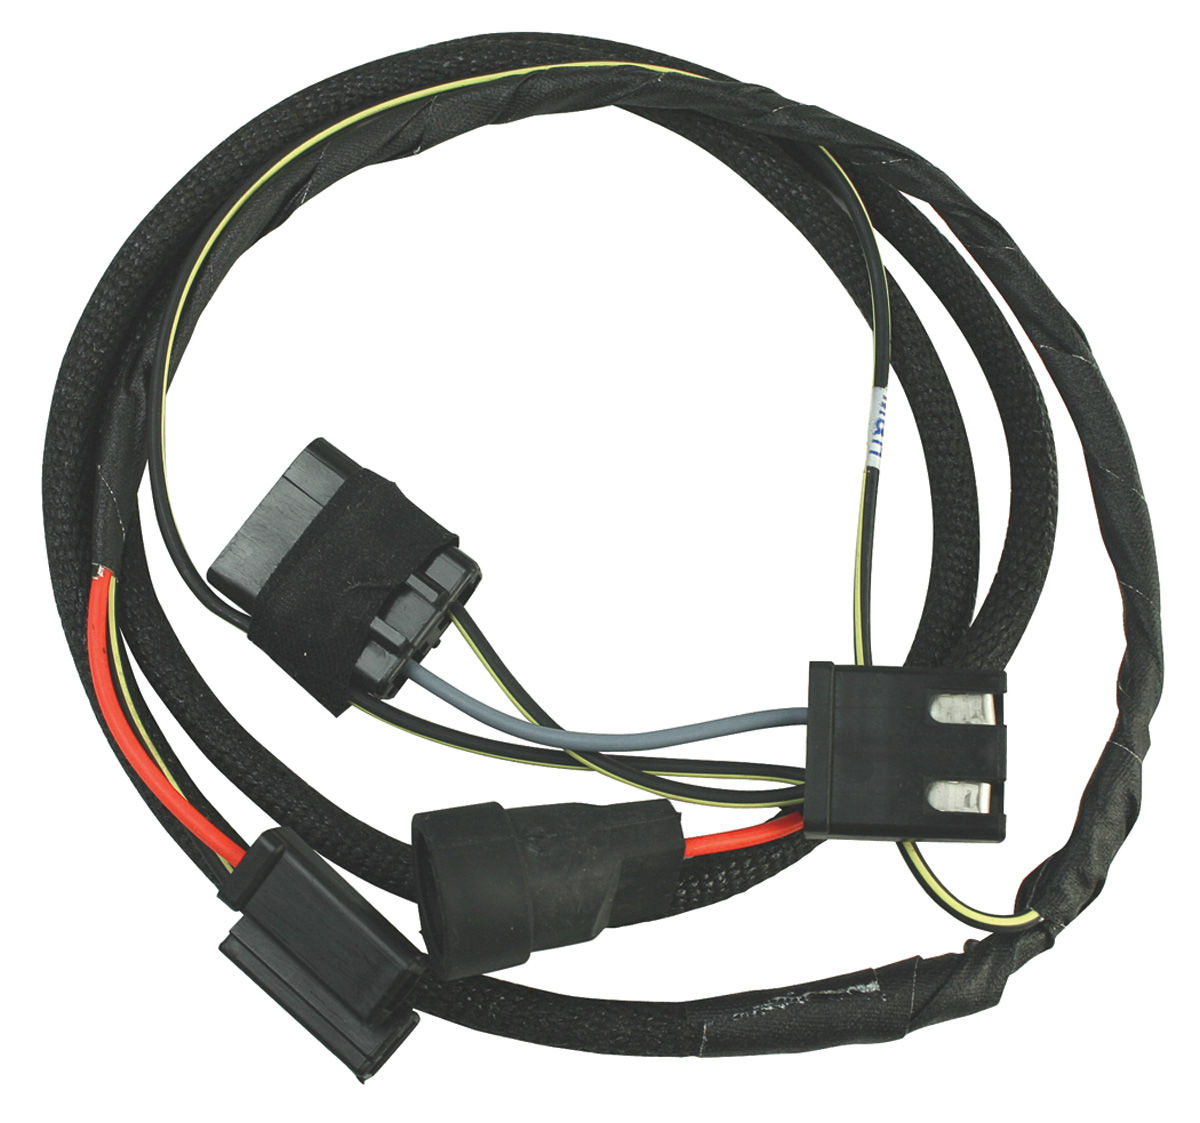 67 Chevelle Wiring Harness 67 Free Engine Image For User